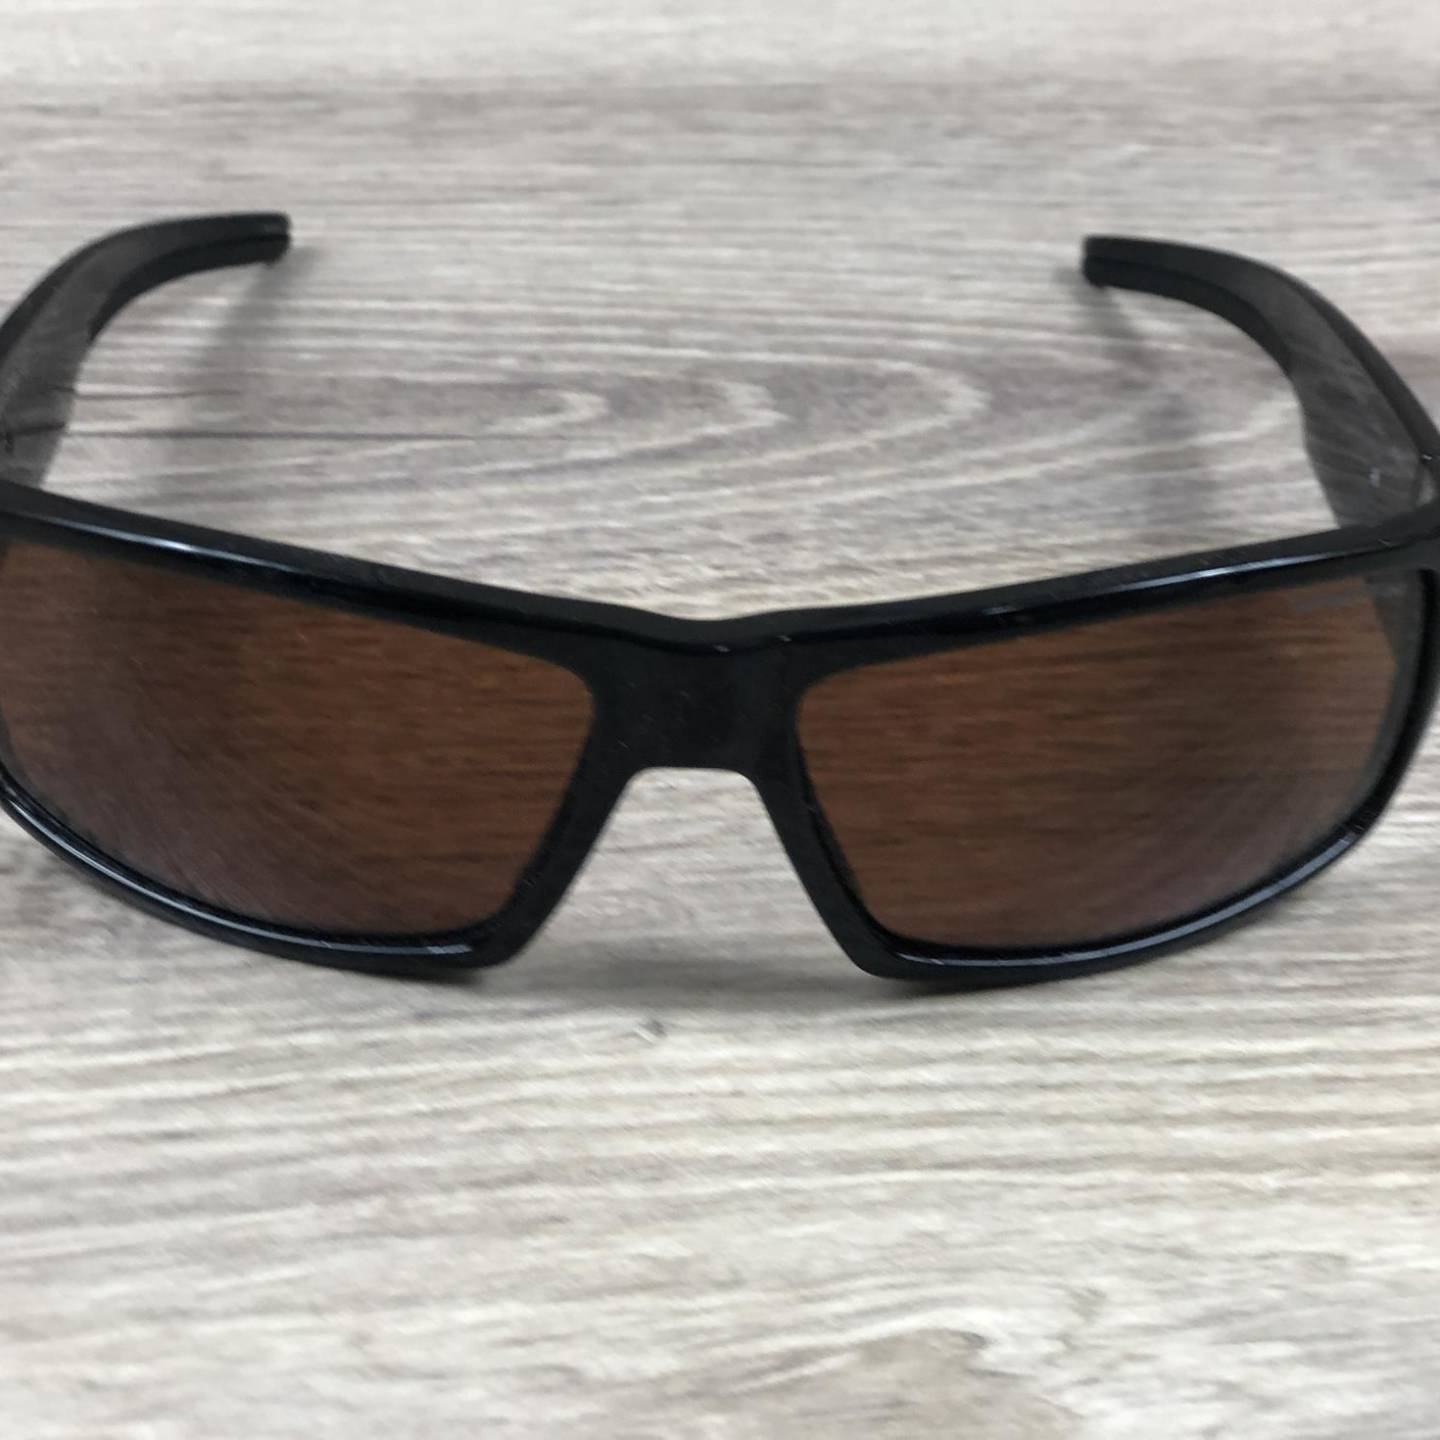 Casual Sunglasses 00002231 (1)